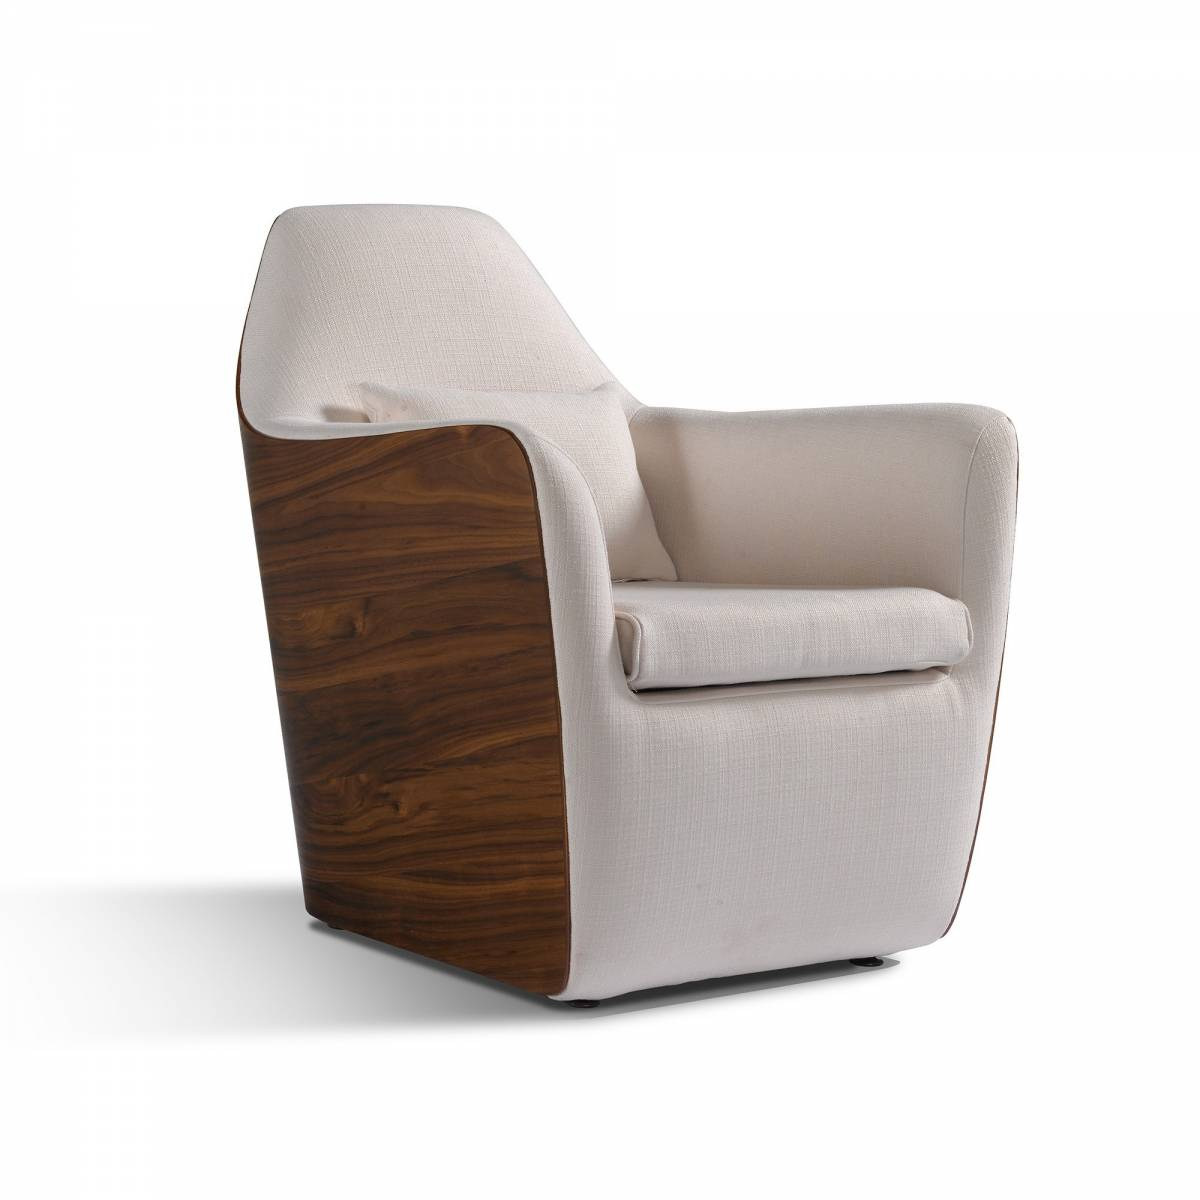 Entune Living Armonia Chair By Mario Mazzer Om Furniture